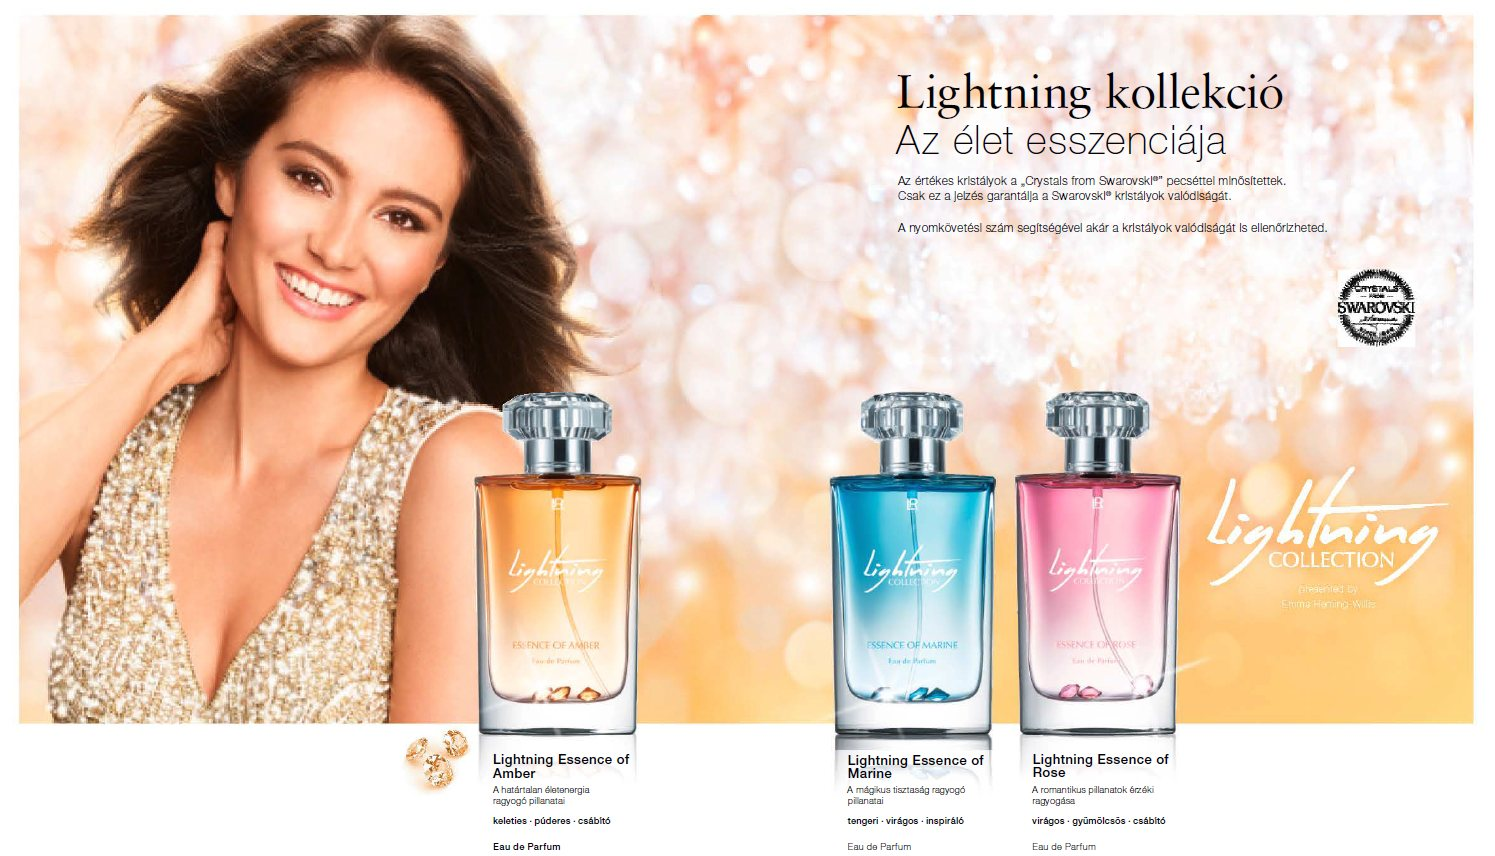 Lightning Edp Essence of Amber